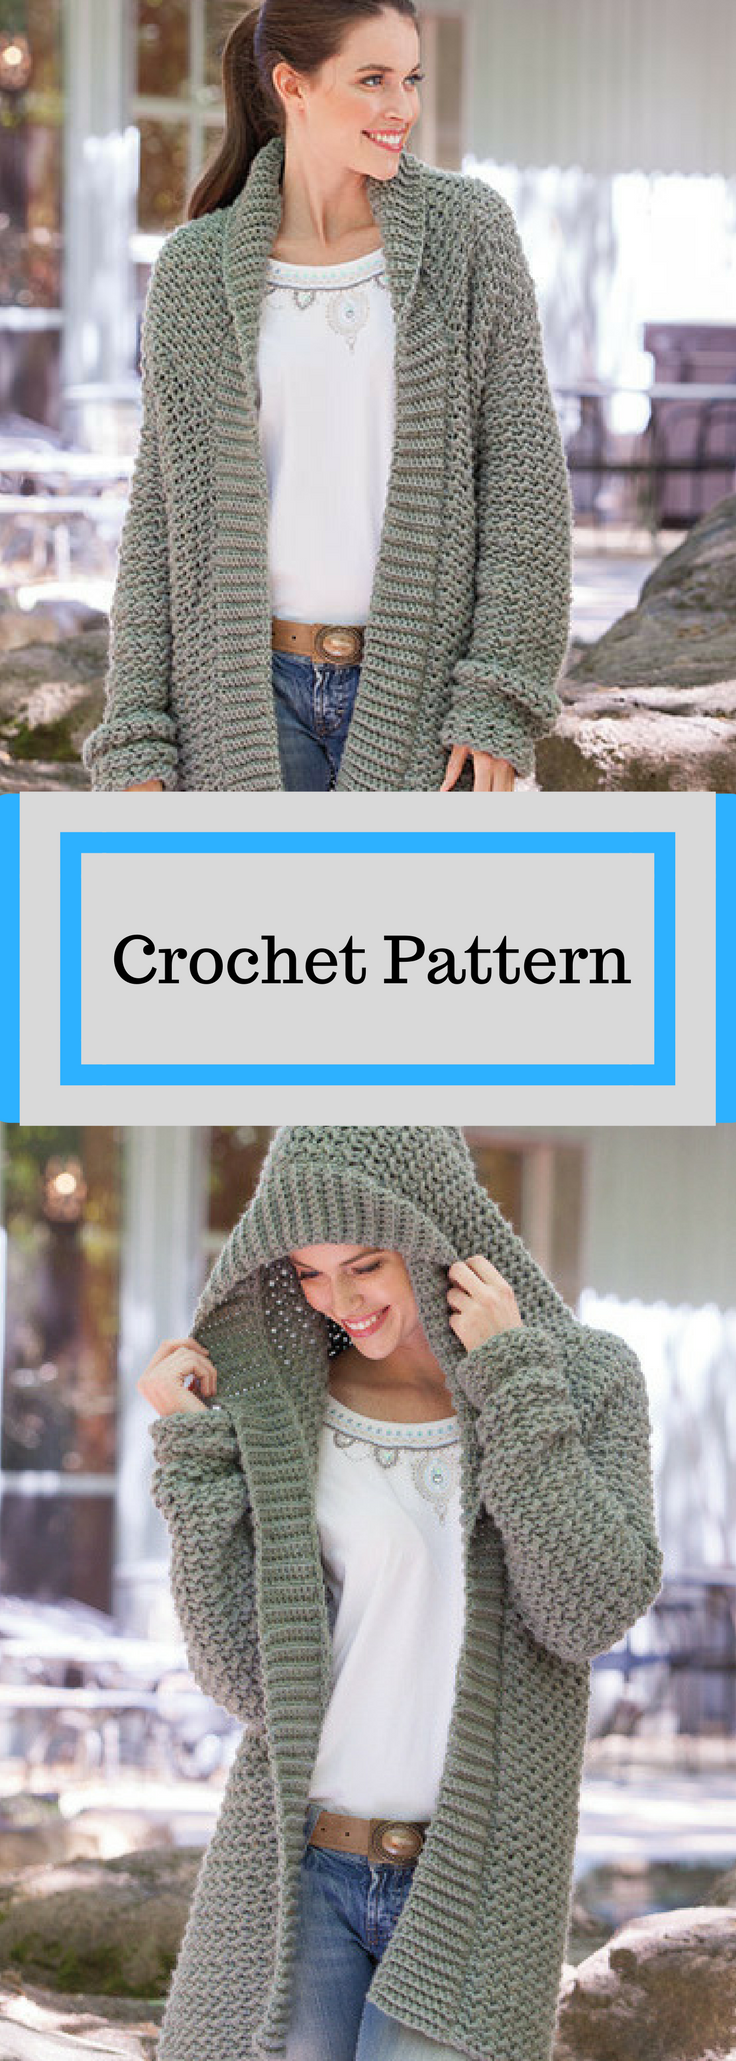 Weekend Casual Hooded Sweater Crochet Pattern Available for ...